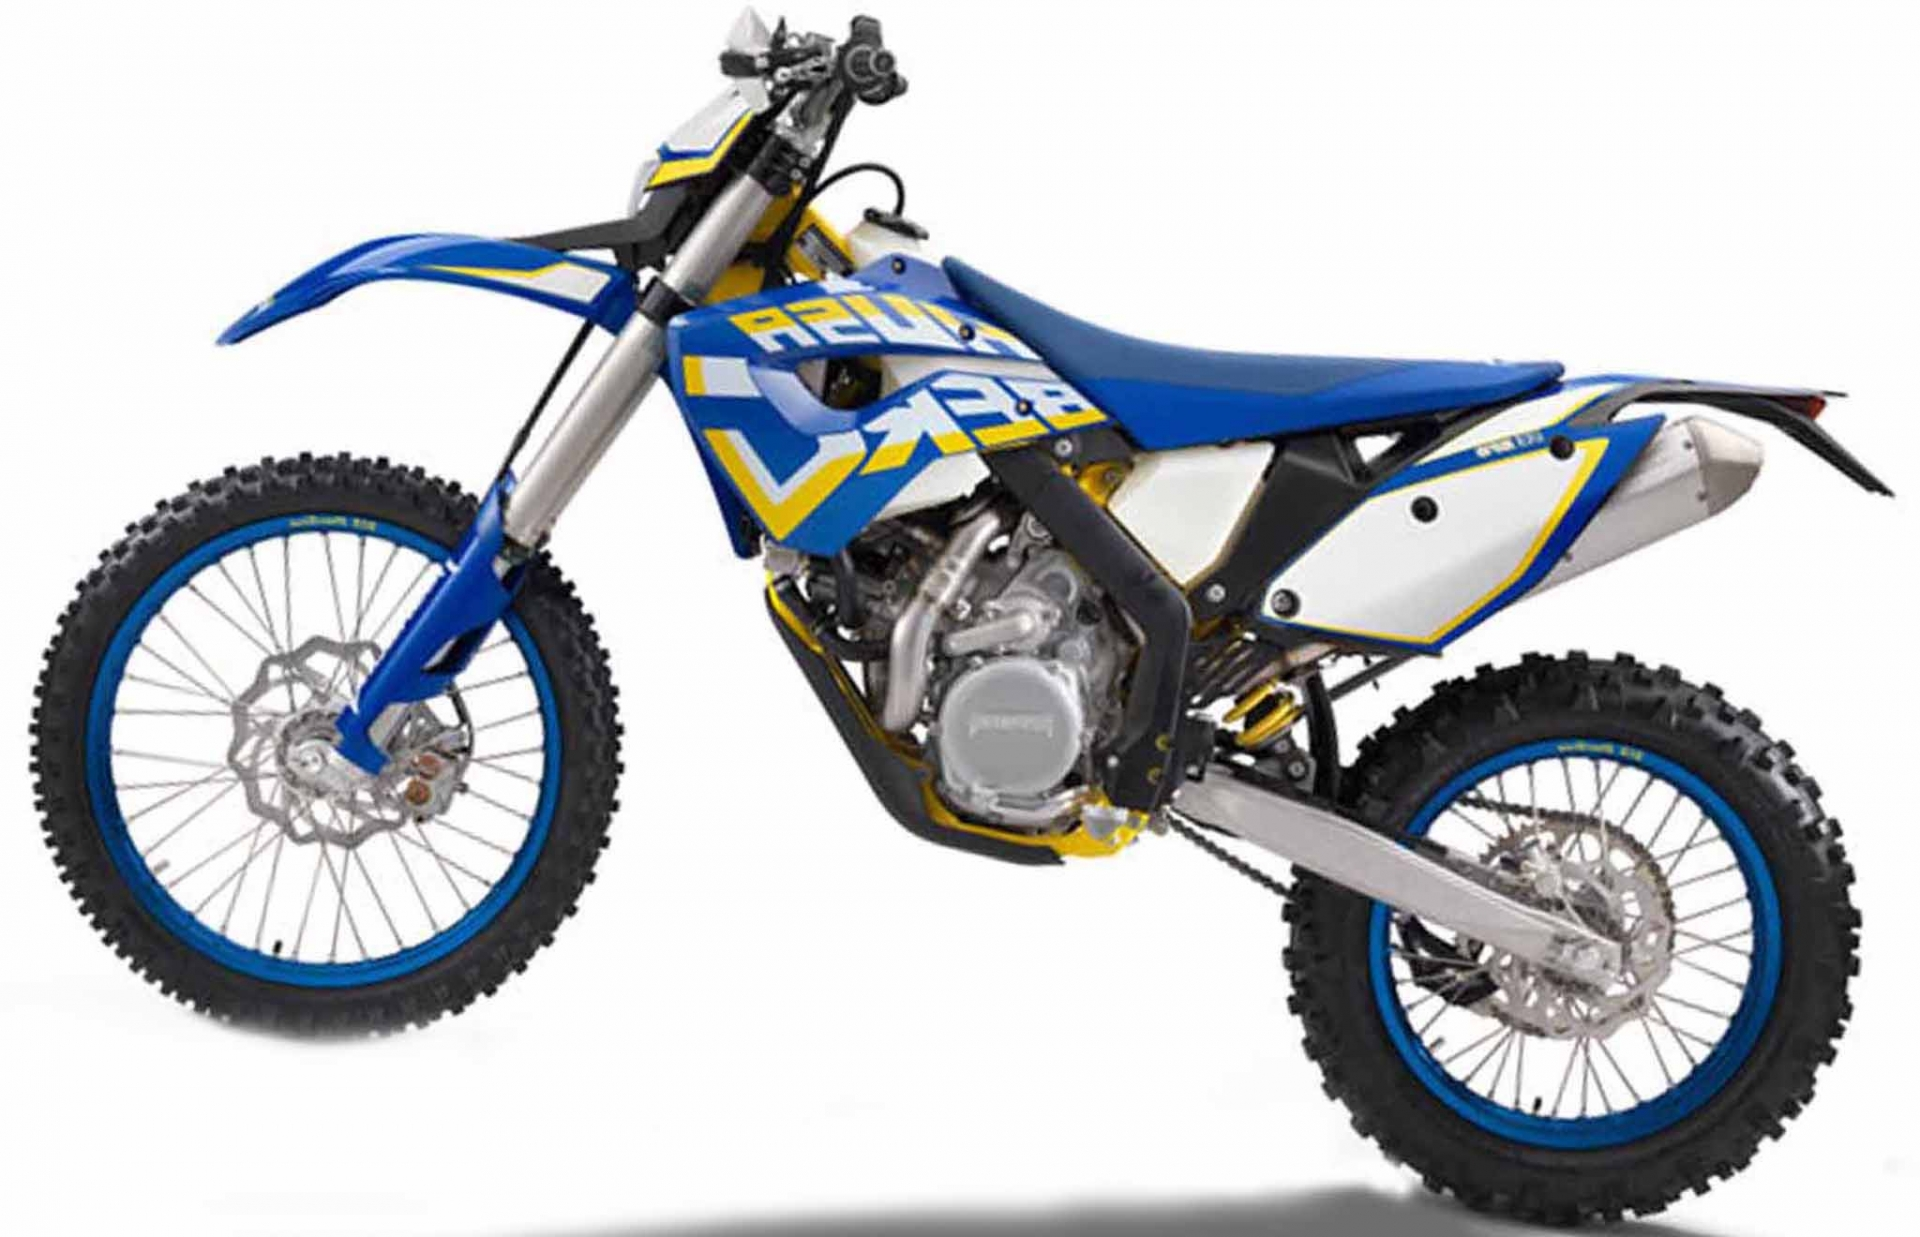 husaberg motorcycles pics specs and list of models. Black Bedroom Furniture Sets. Home Design Ideas